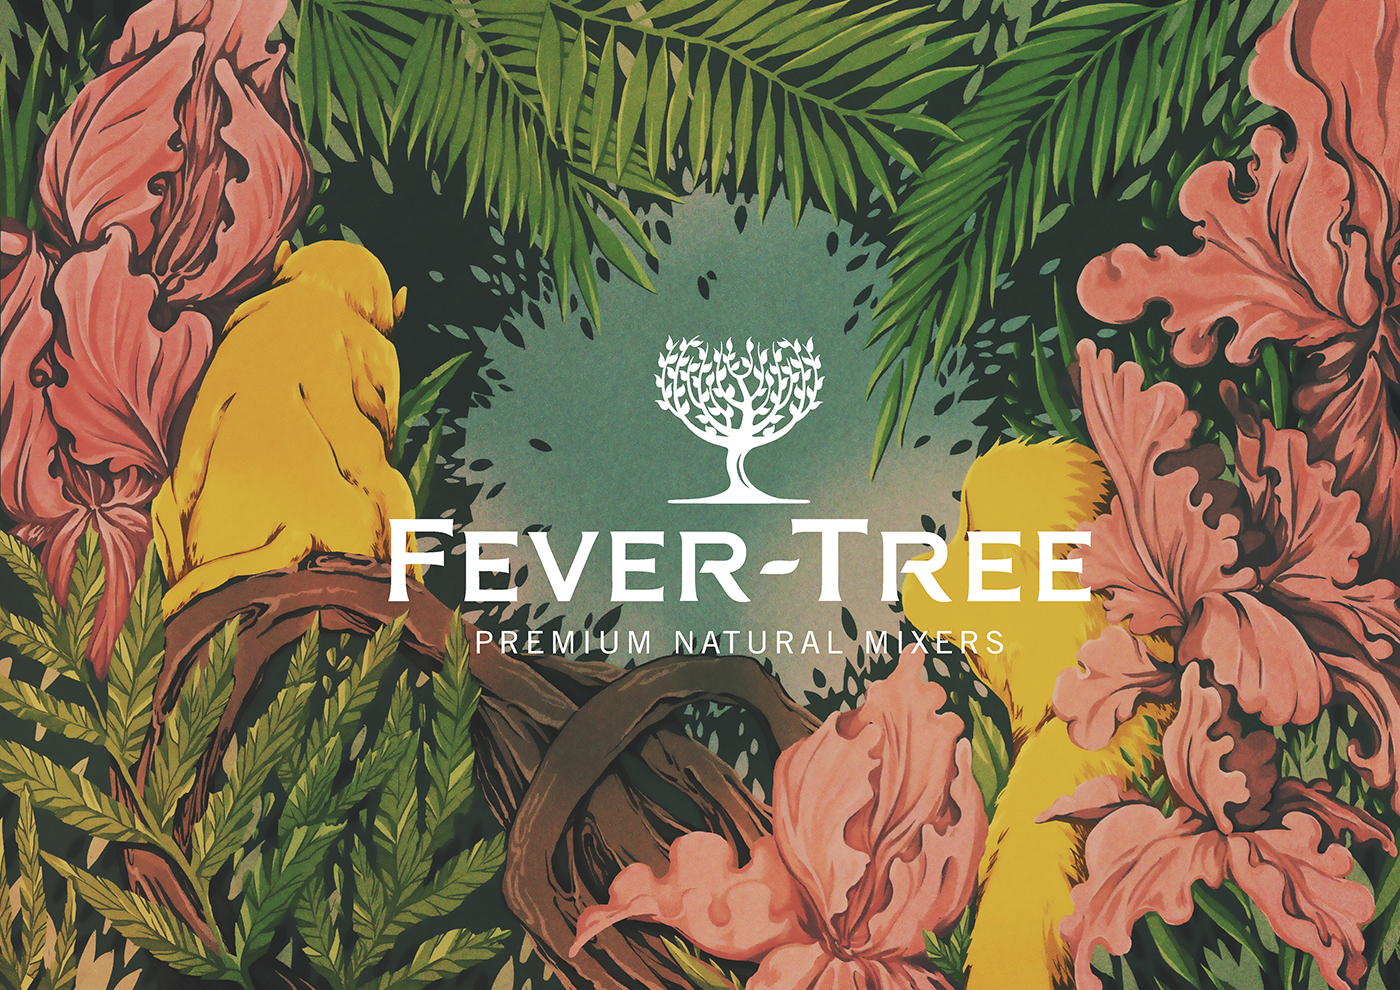 Richard Solomon - YCN - Fever-Tree Limited Package monkey - commercial - 2016